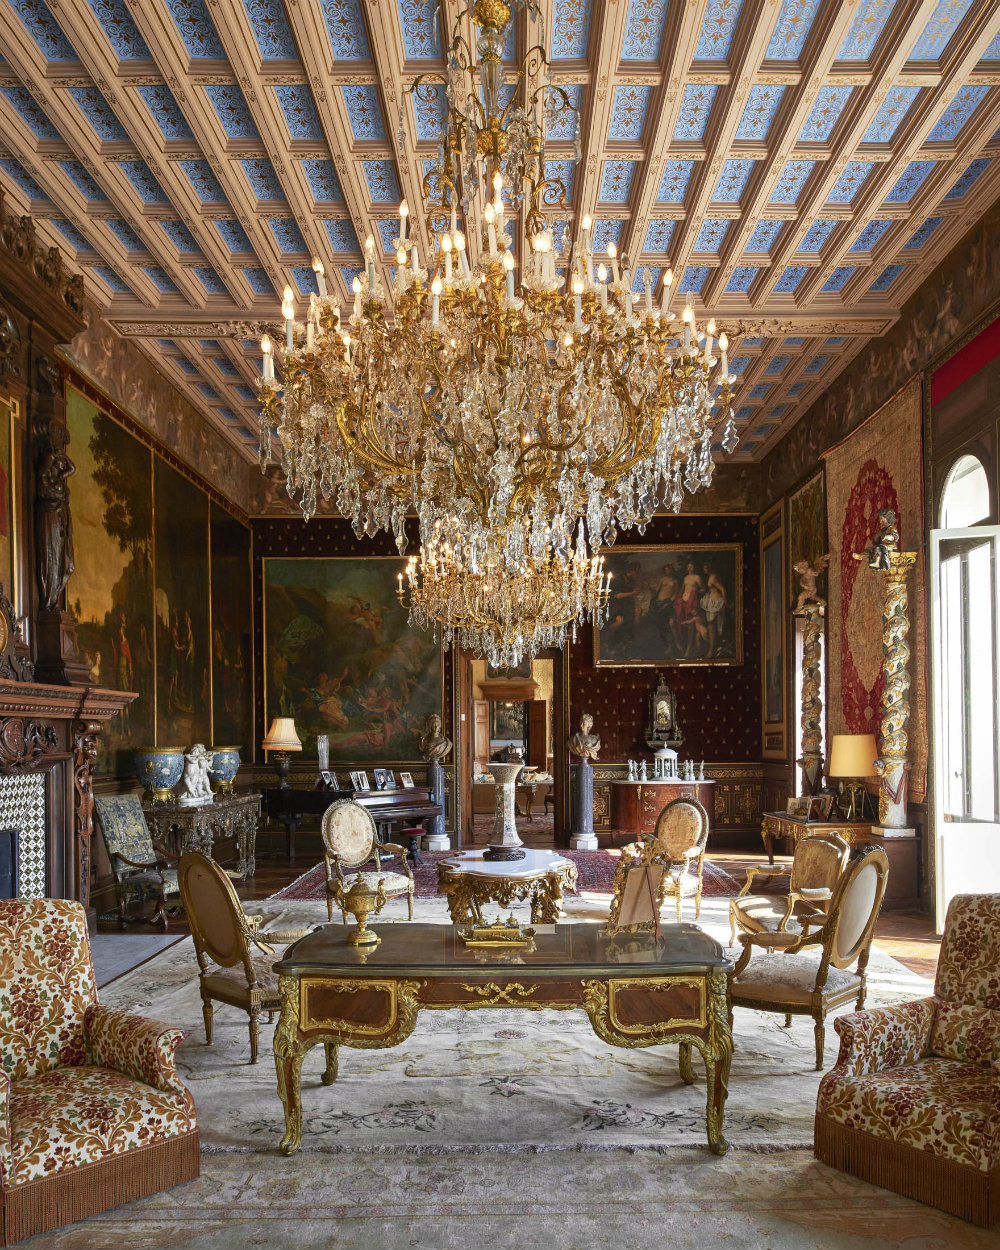 Take a Look Inside The Most Expensive House in The World 03